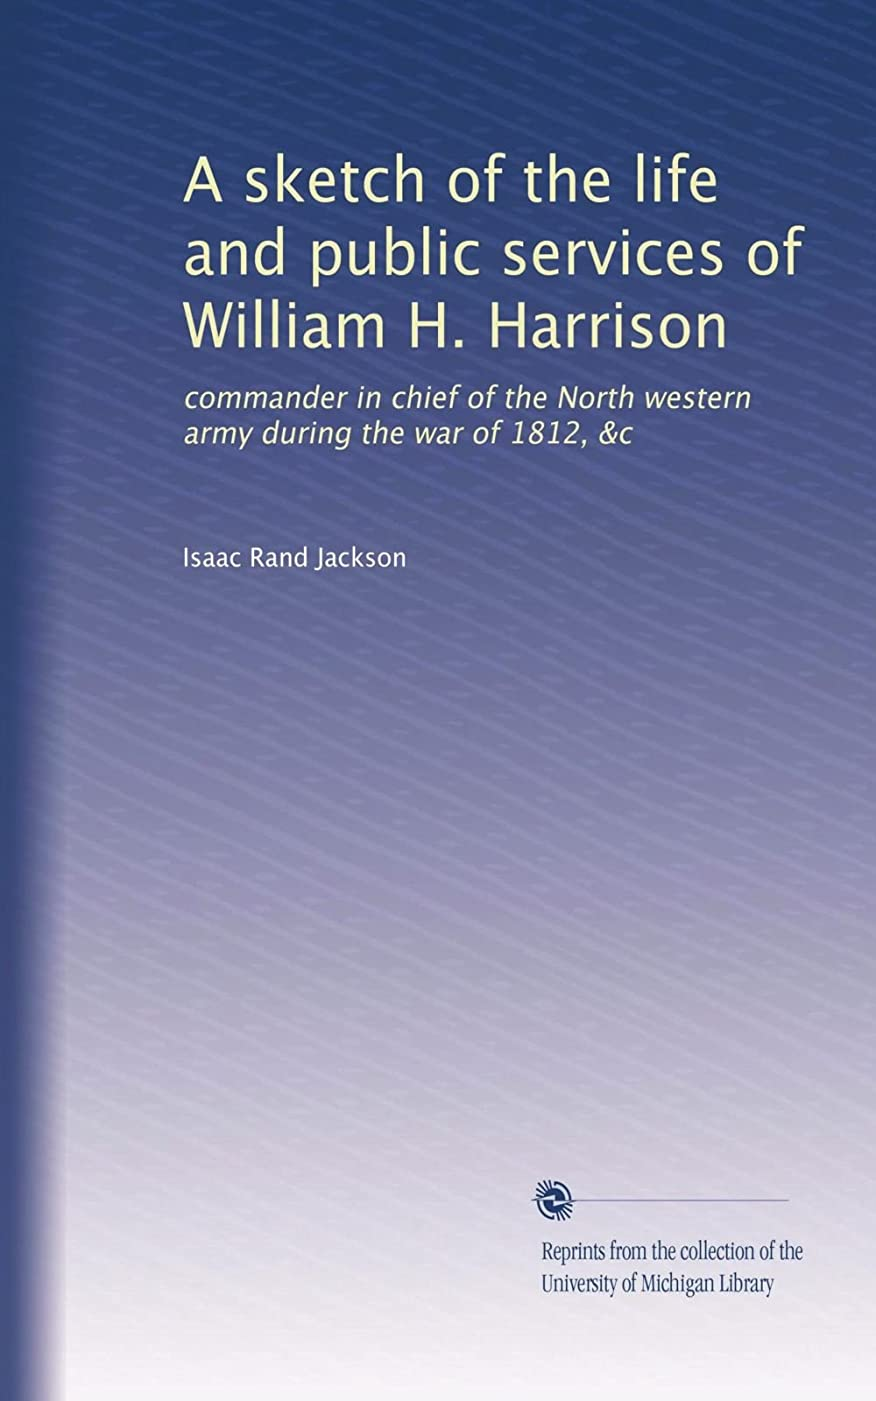 ラショナル問い合わせ買うA sketch of the life and public services of William H. Harrison: commander in chief of the North western army during the war of 1812, &c